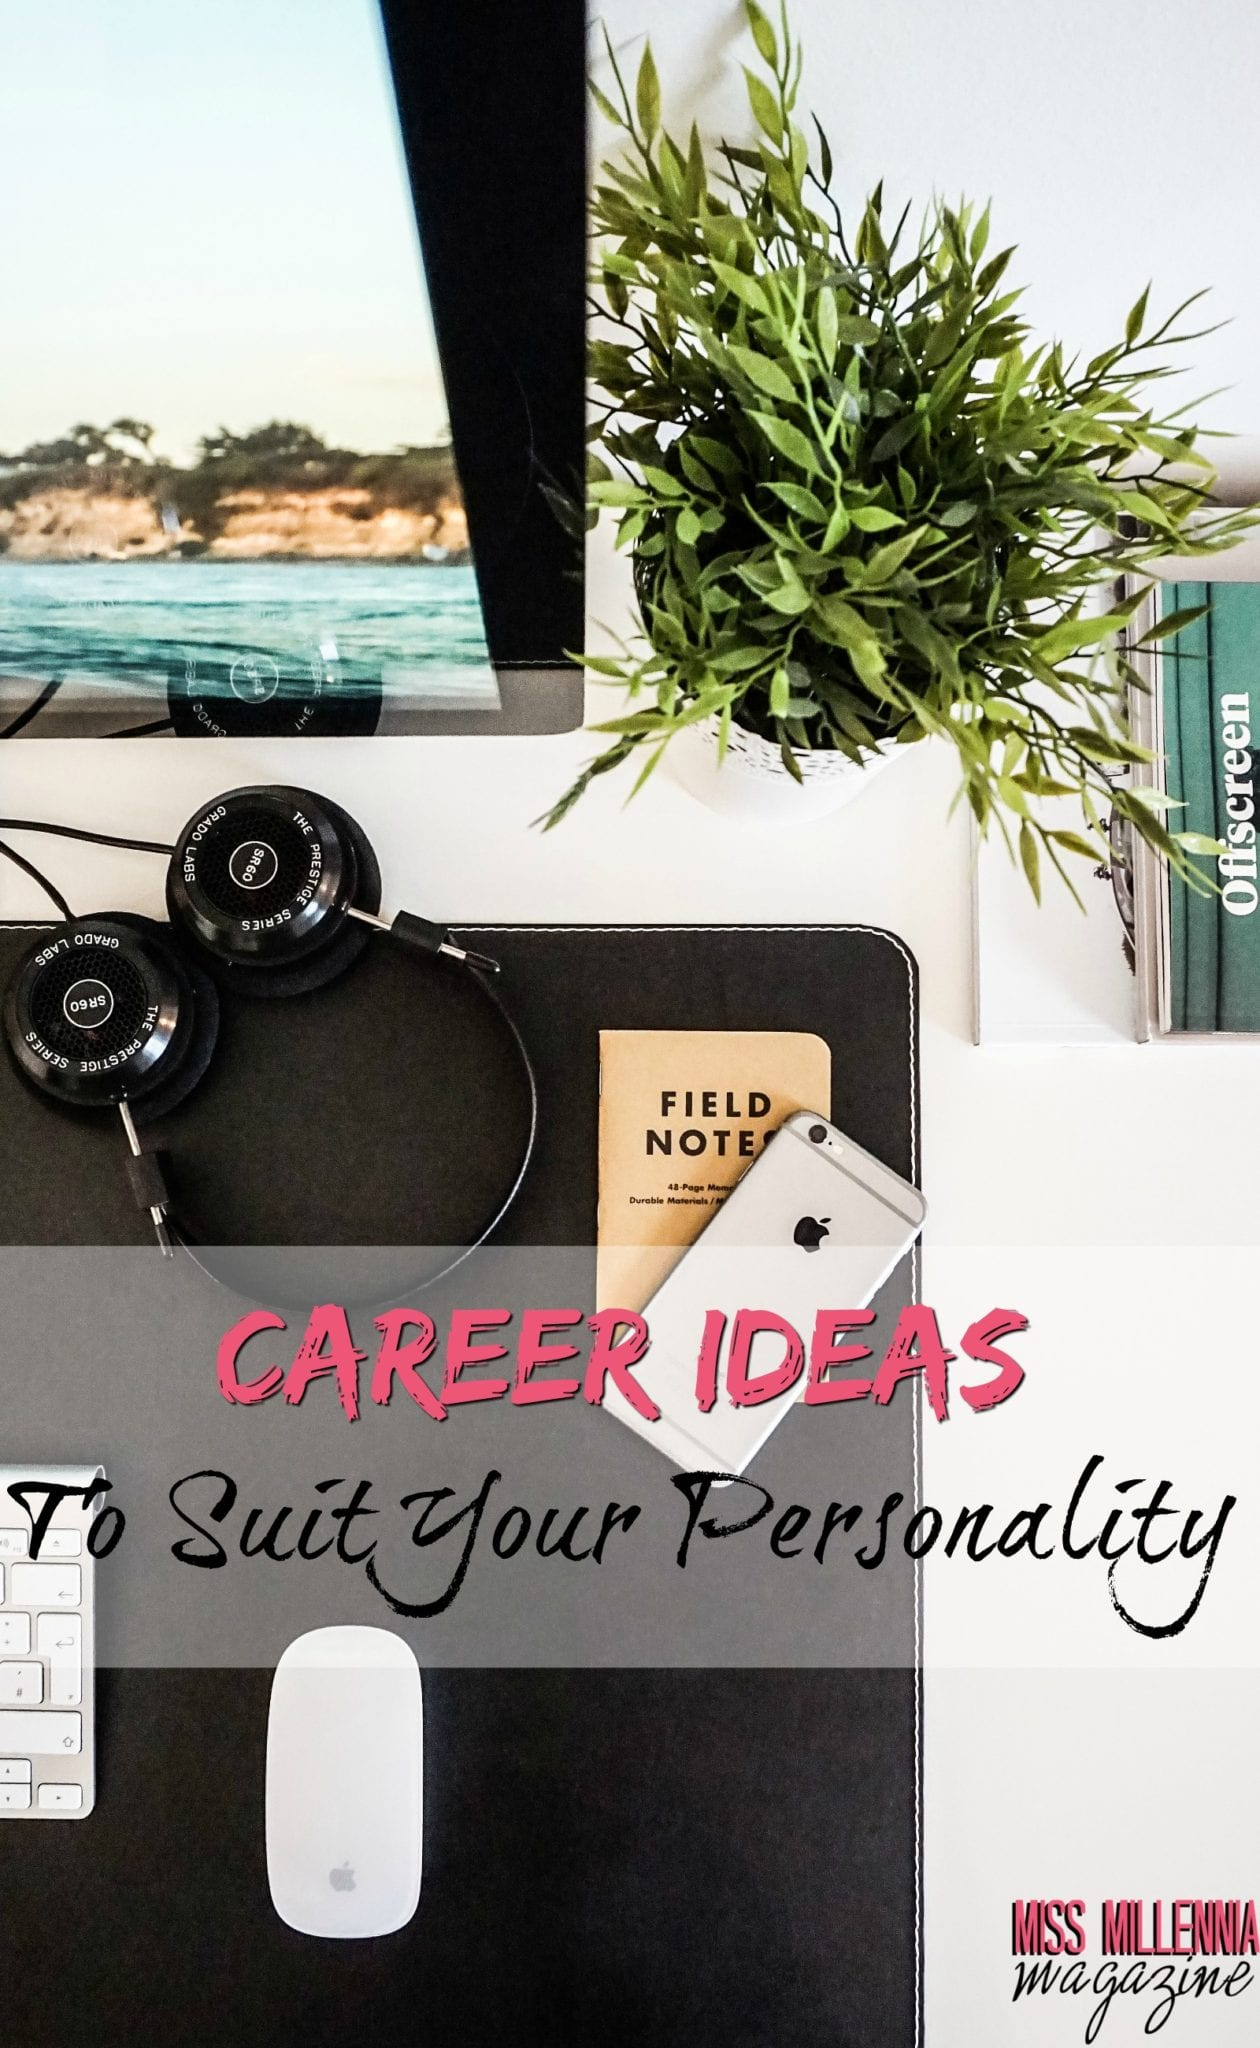 career ideas to suit your personality miss millennia magazine career ideas to suit your personality